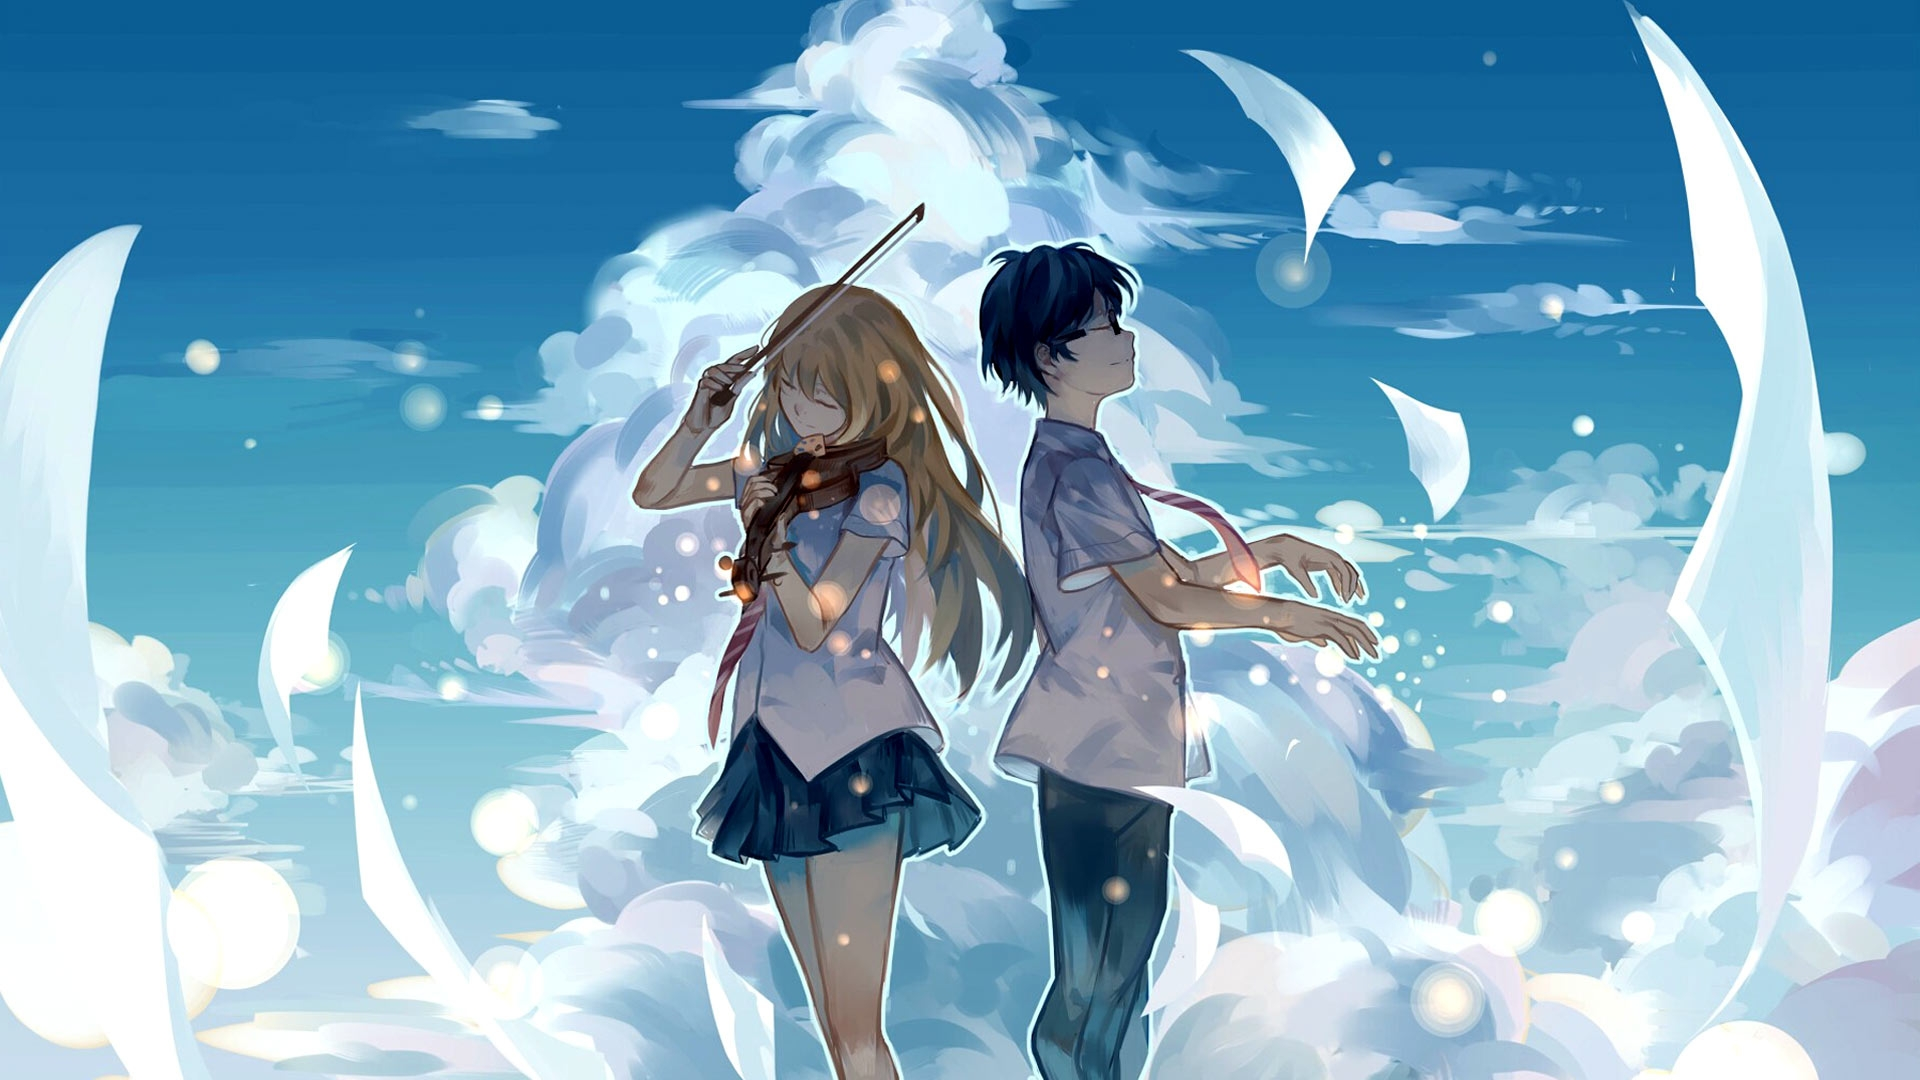 Best-desktop-background-hd-anime-Anime-Hd-Pictures-Live-Hd-Hq-Pictures-for-wallpaper-wp3603231